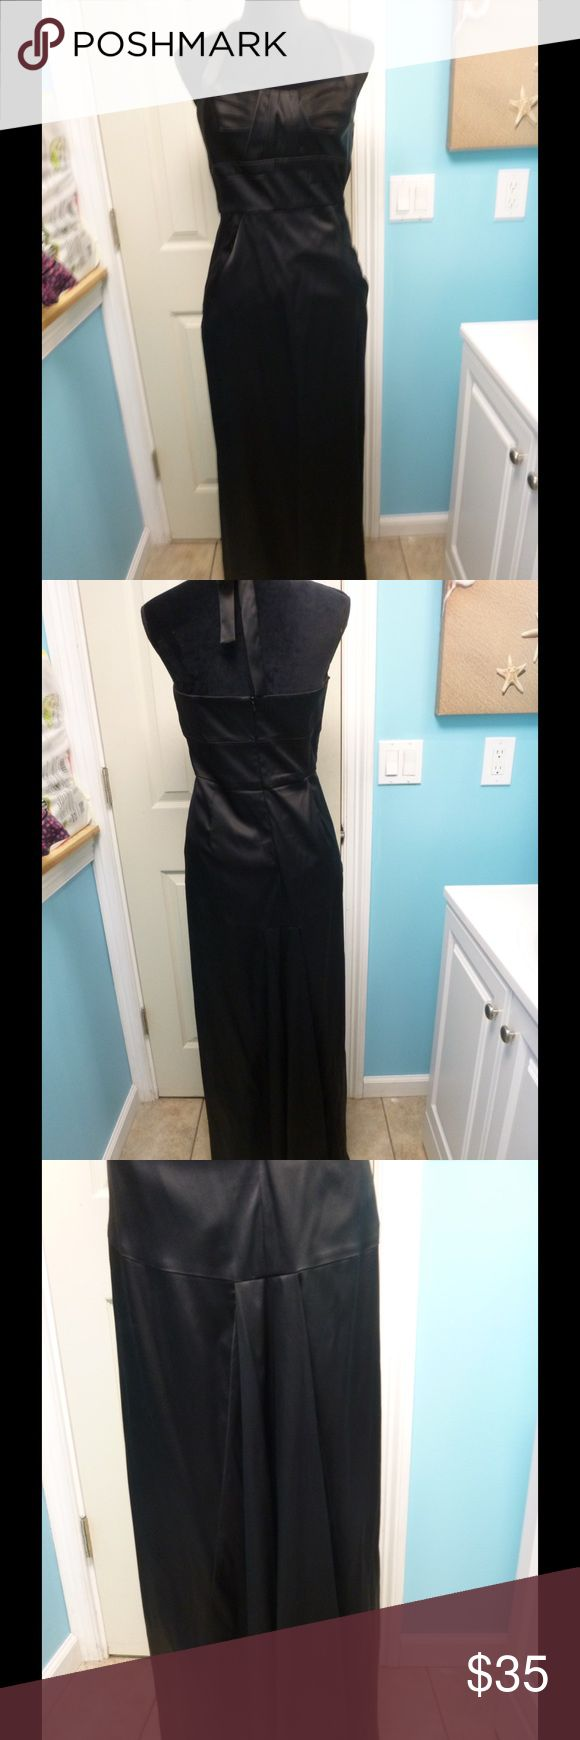 Donna Ricco black satin floor length halter dress This Donna Ricco dress is really pretty. It's black satin and floor length. The top is a halter style with a ruched neckline. There's boning on the top. There's a flattering pick up in the back. There is a zipper in the back. It was worn once and could be dry cleaned. It's size 10. It's made of 76% acetate, 22% nylon and 2% spandex. Donna Ricco Dresses